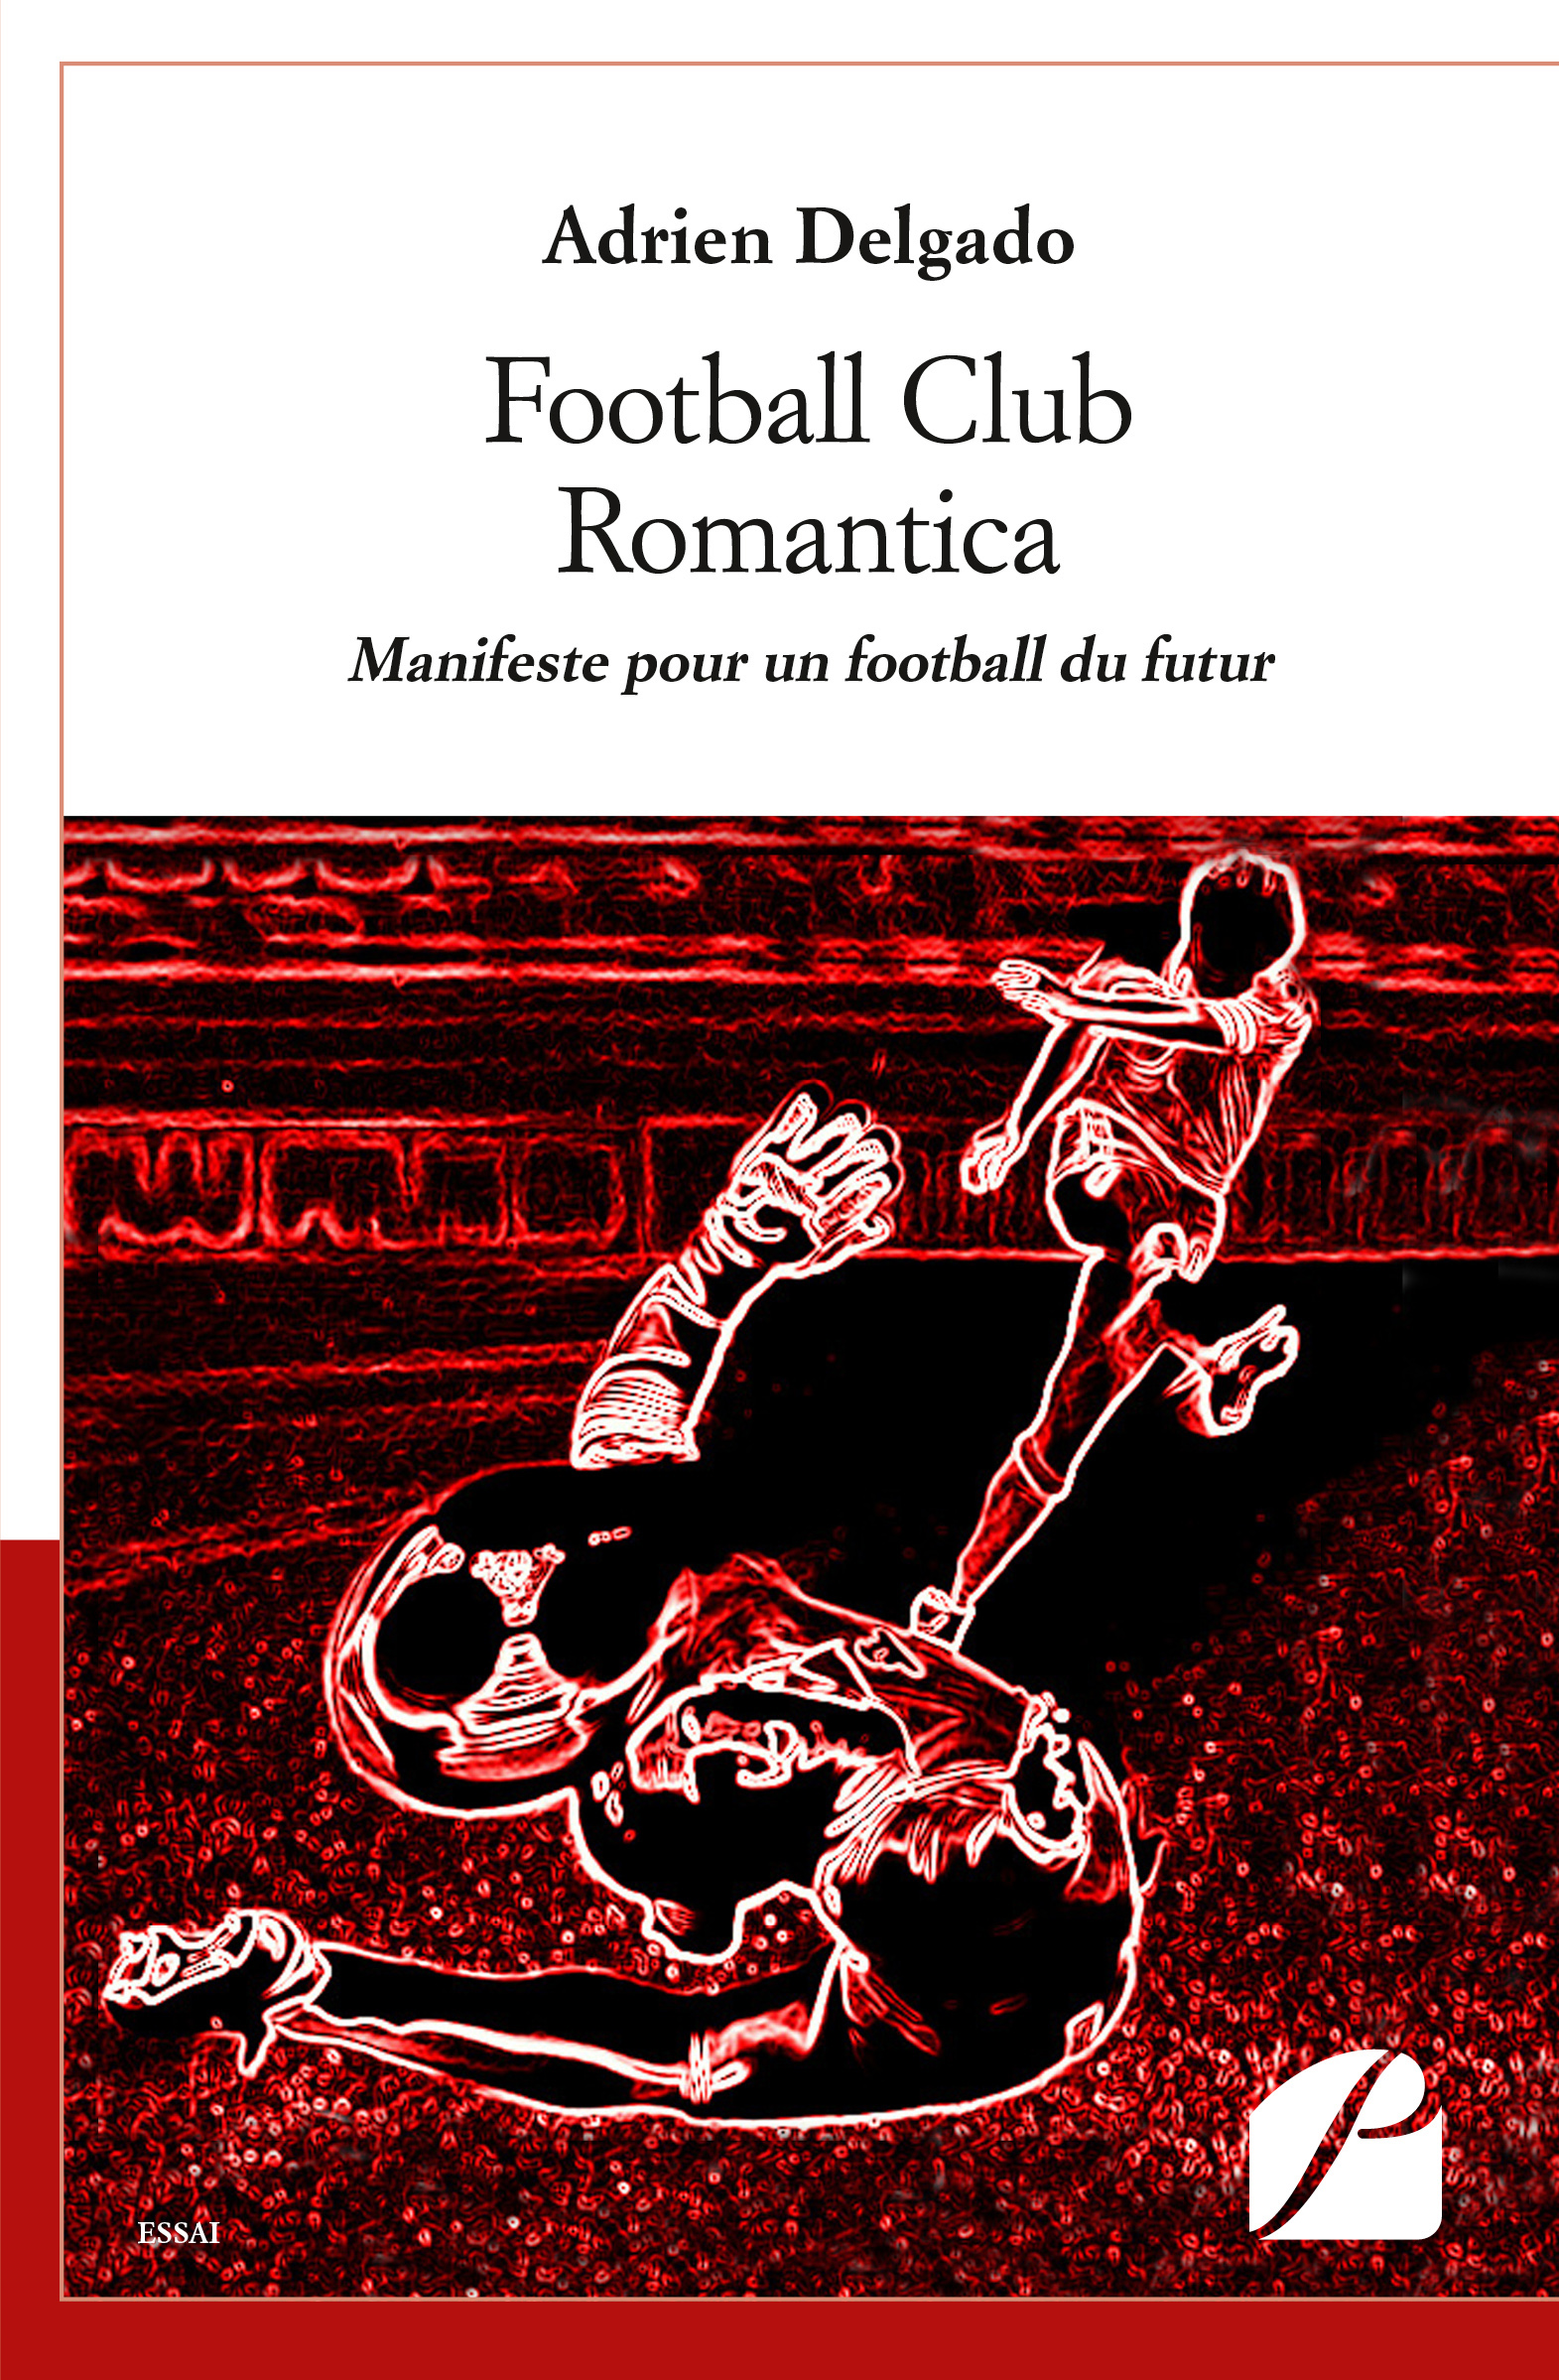 Football Club Romantica